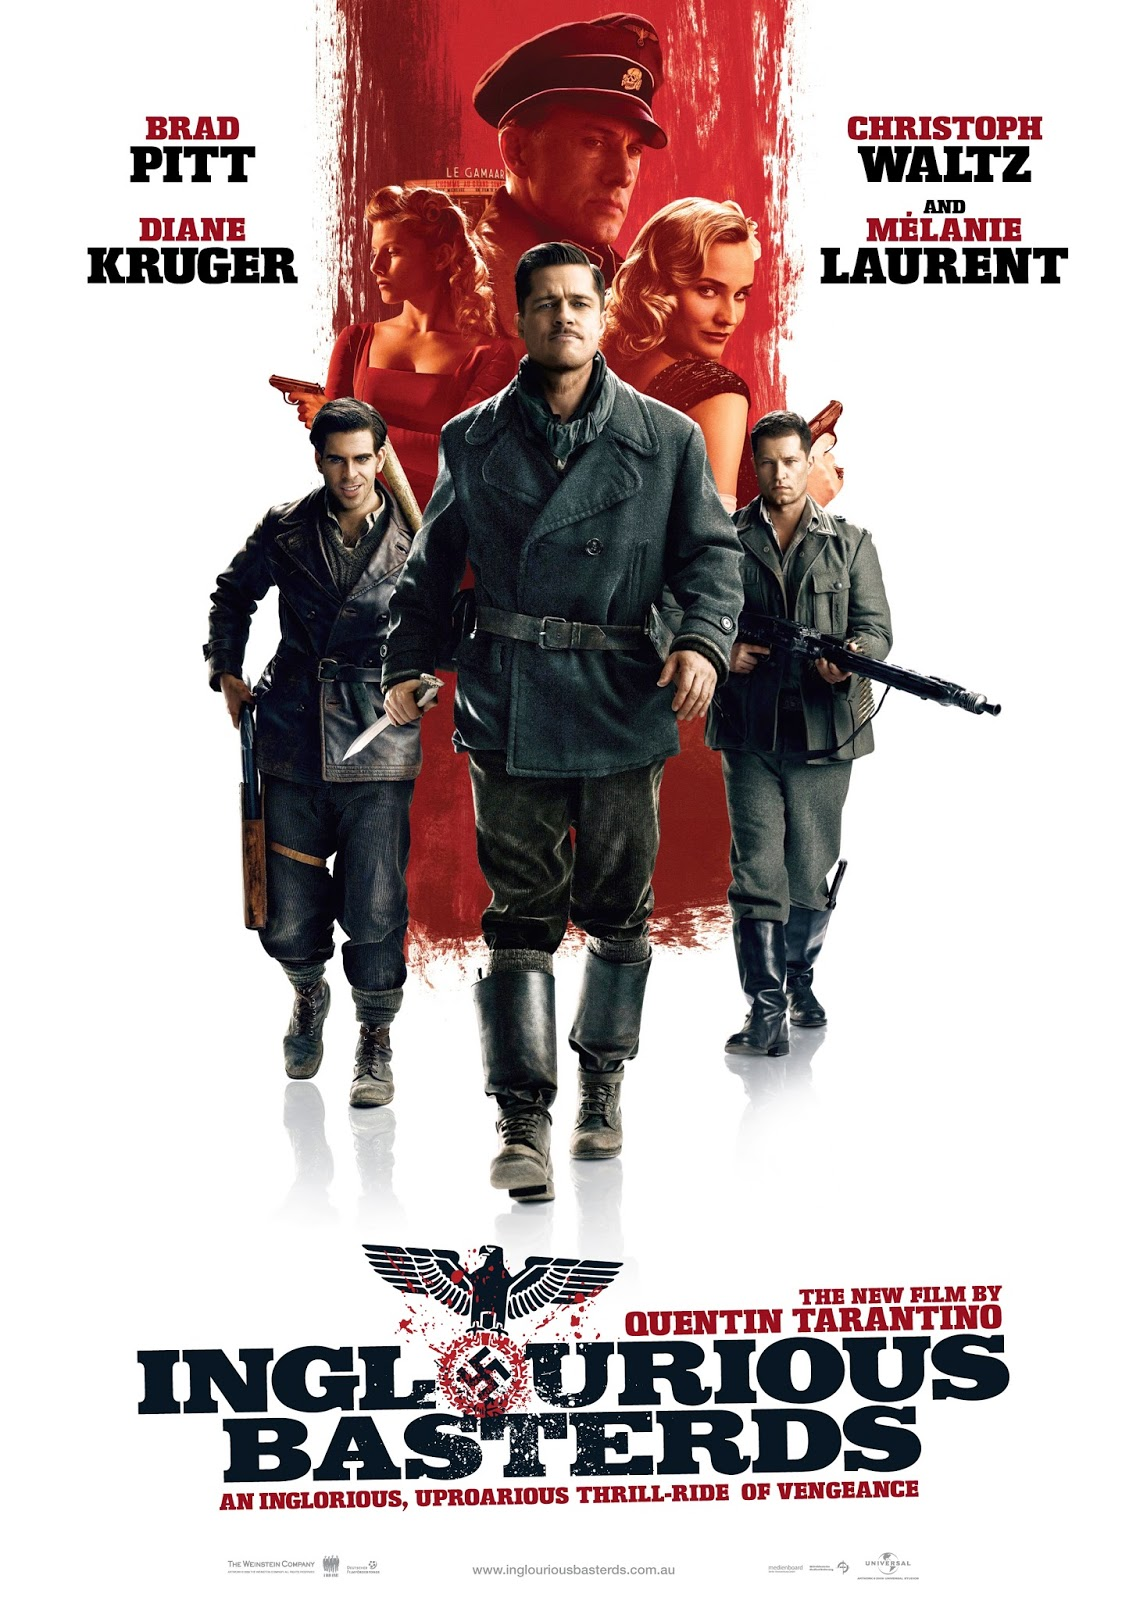 Inglorious Basterds — 3 out of 5 stars